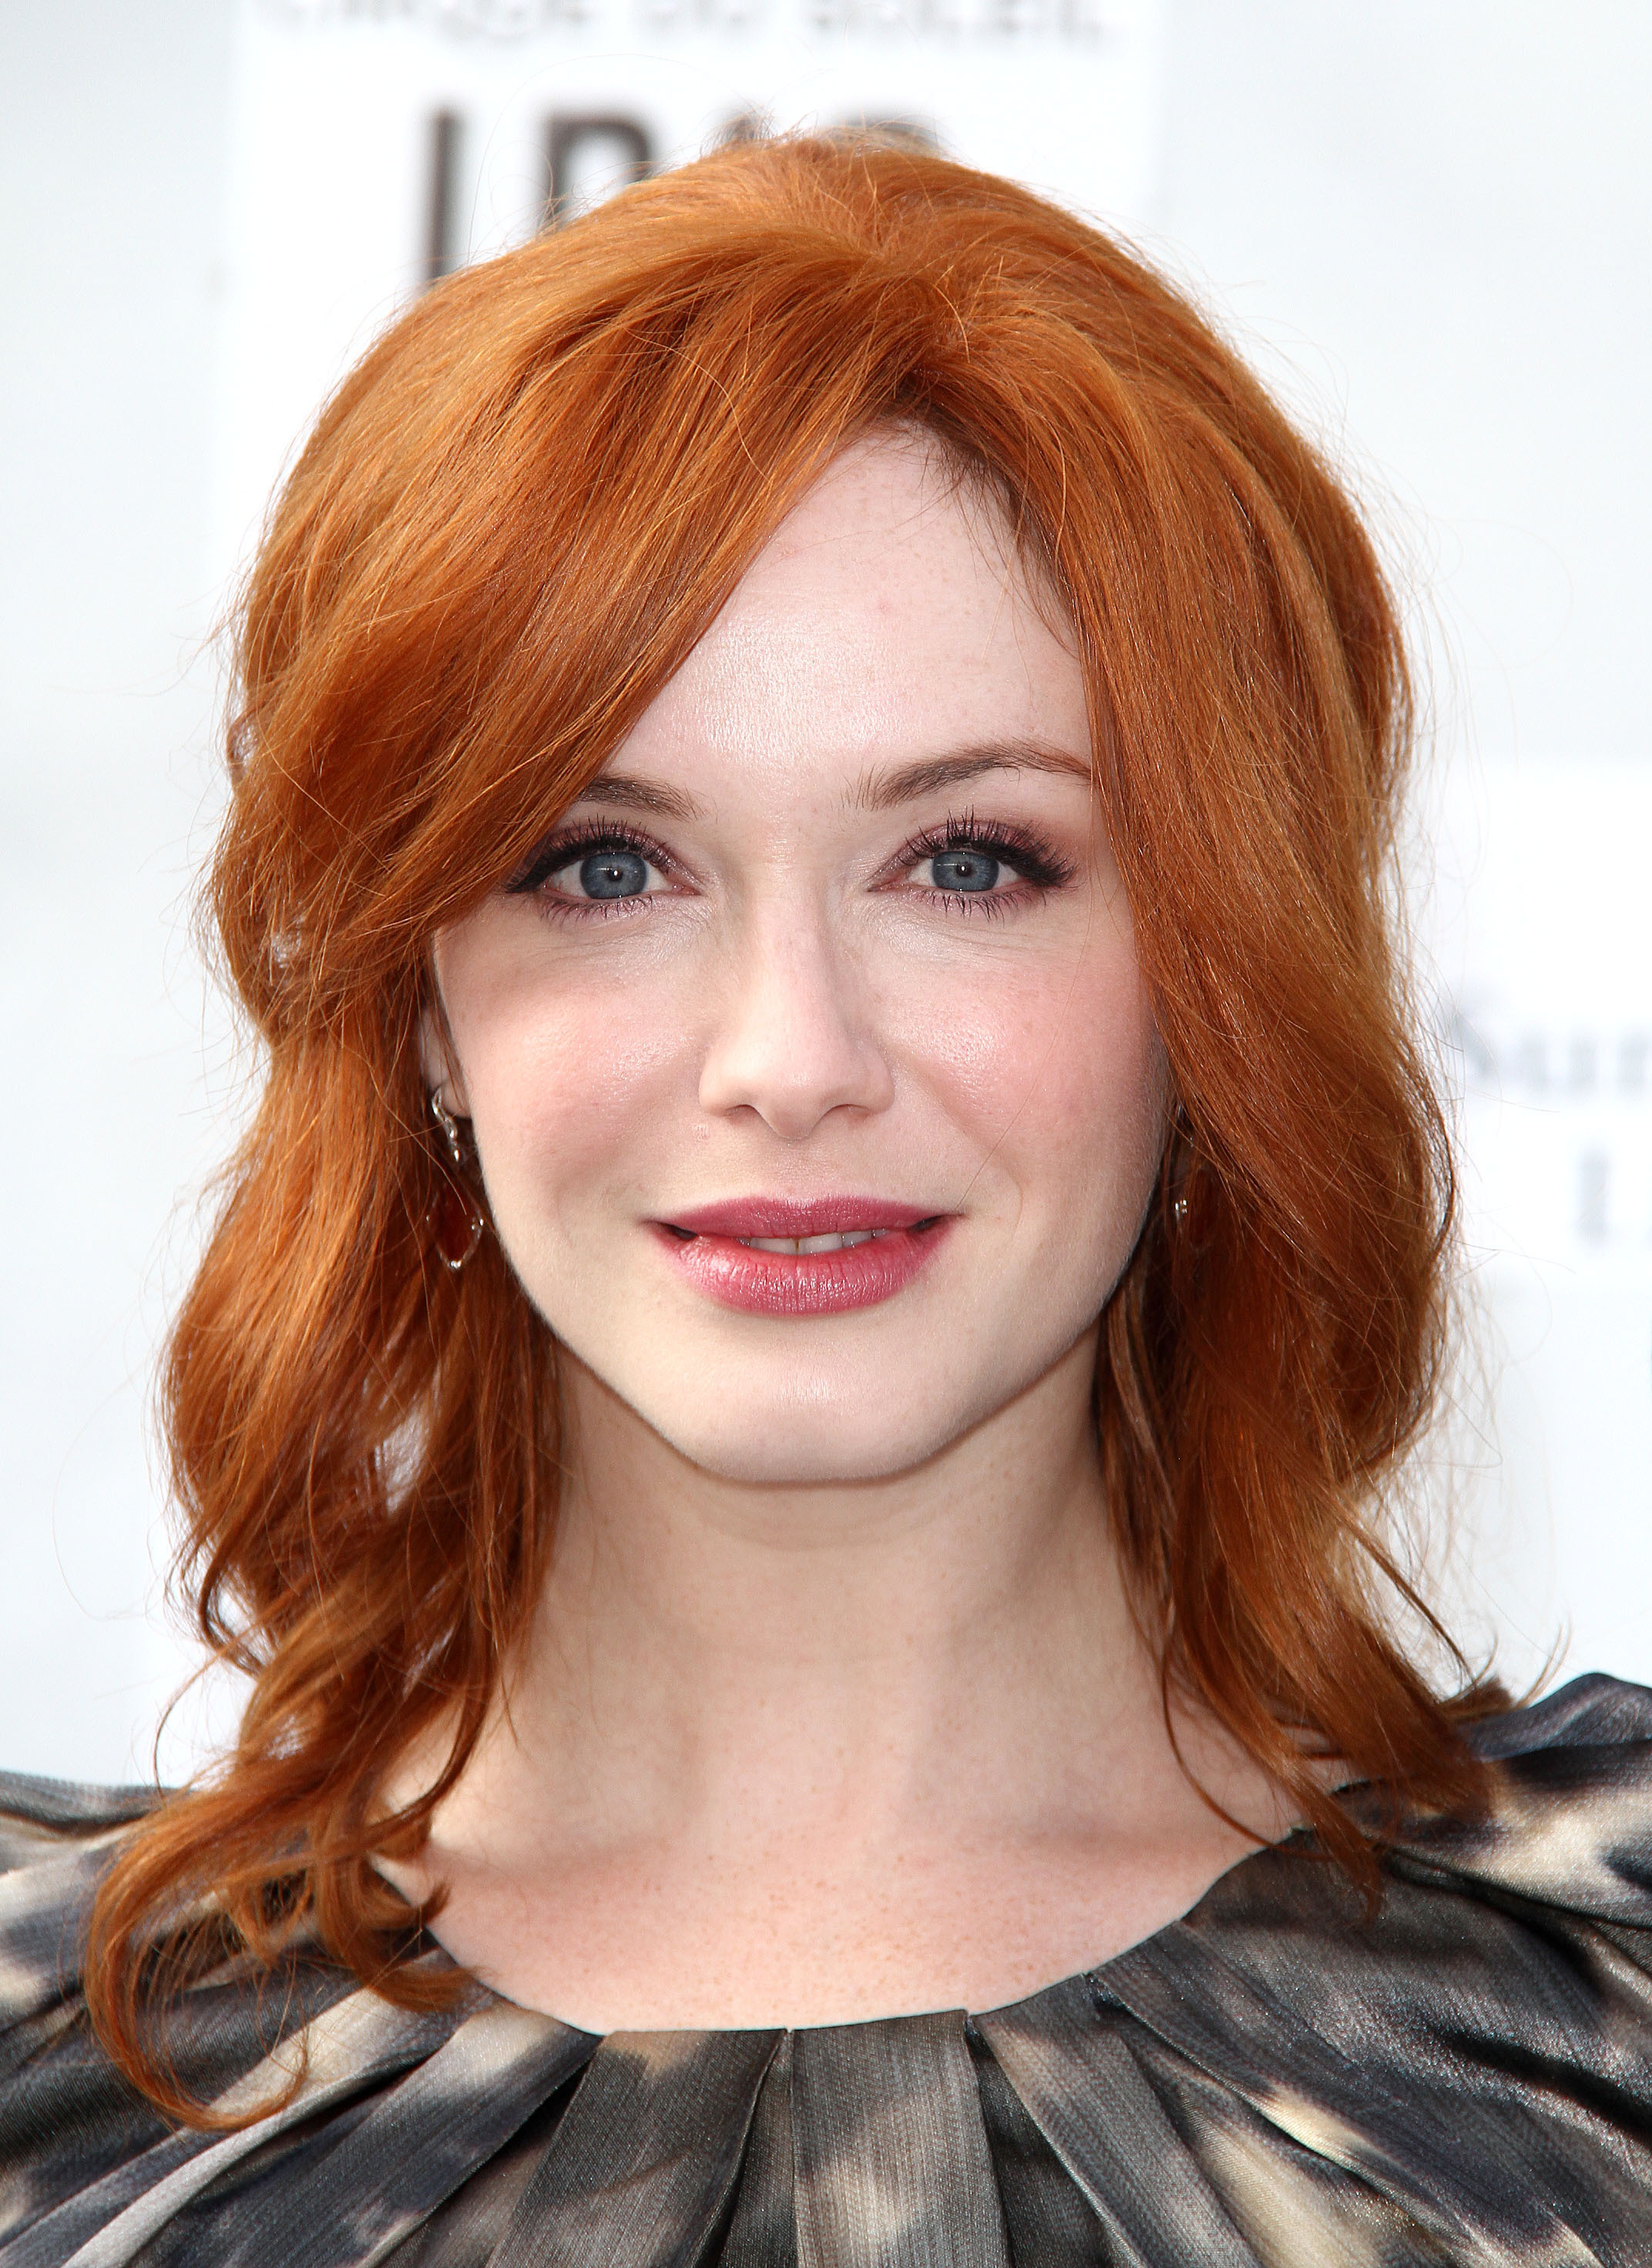 Myths about red hair are rooted in fear of difference